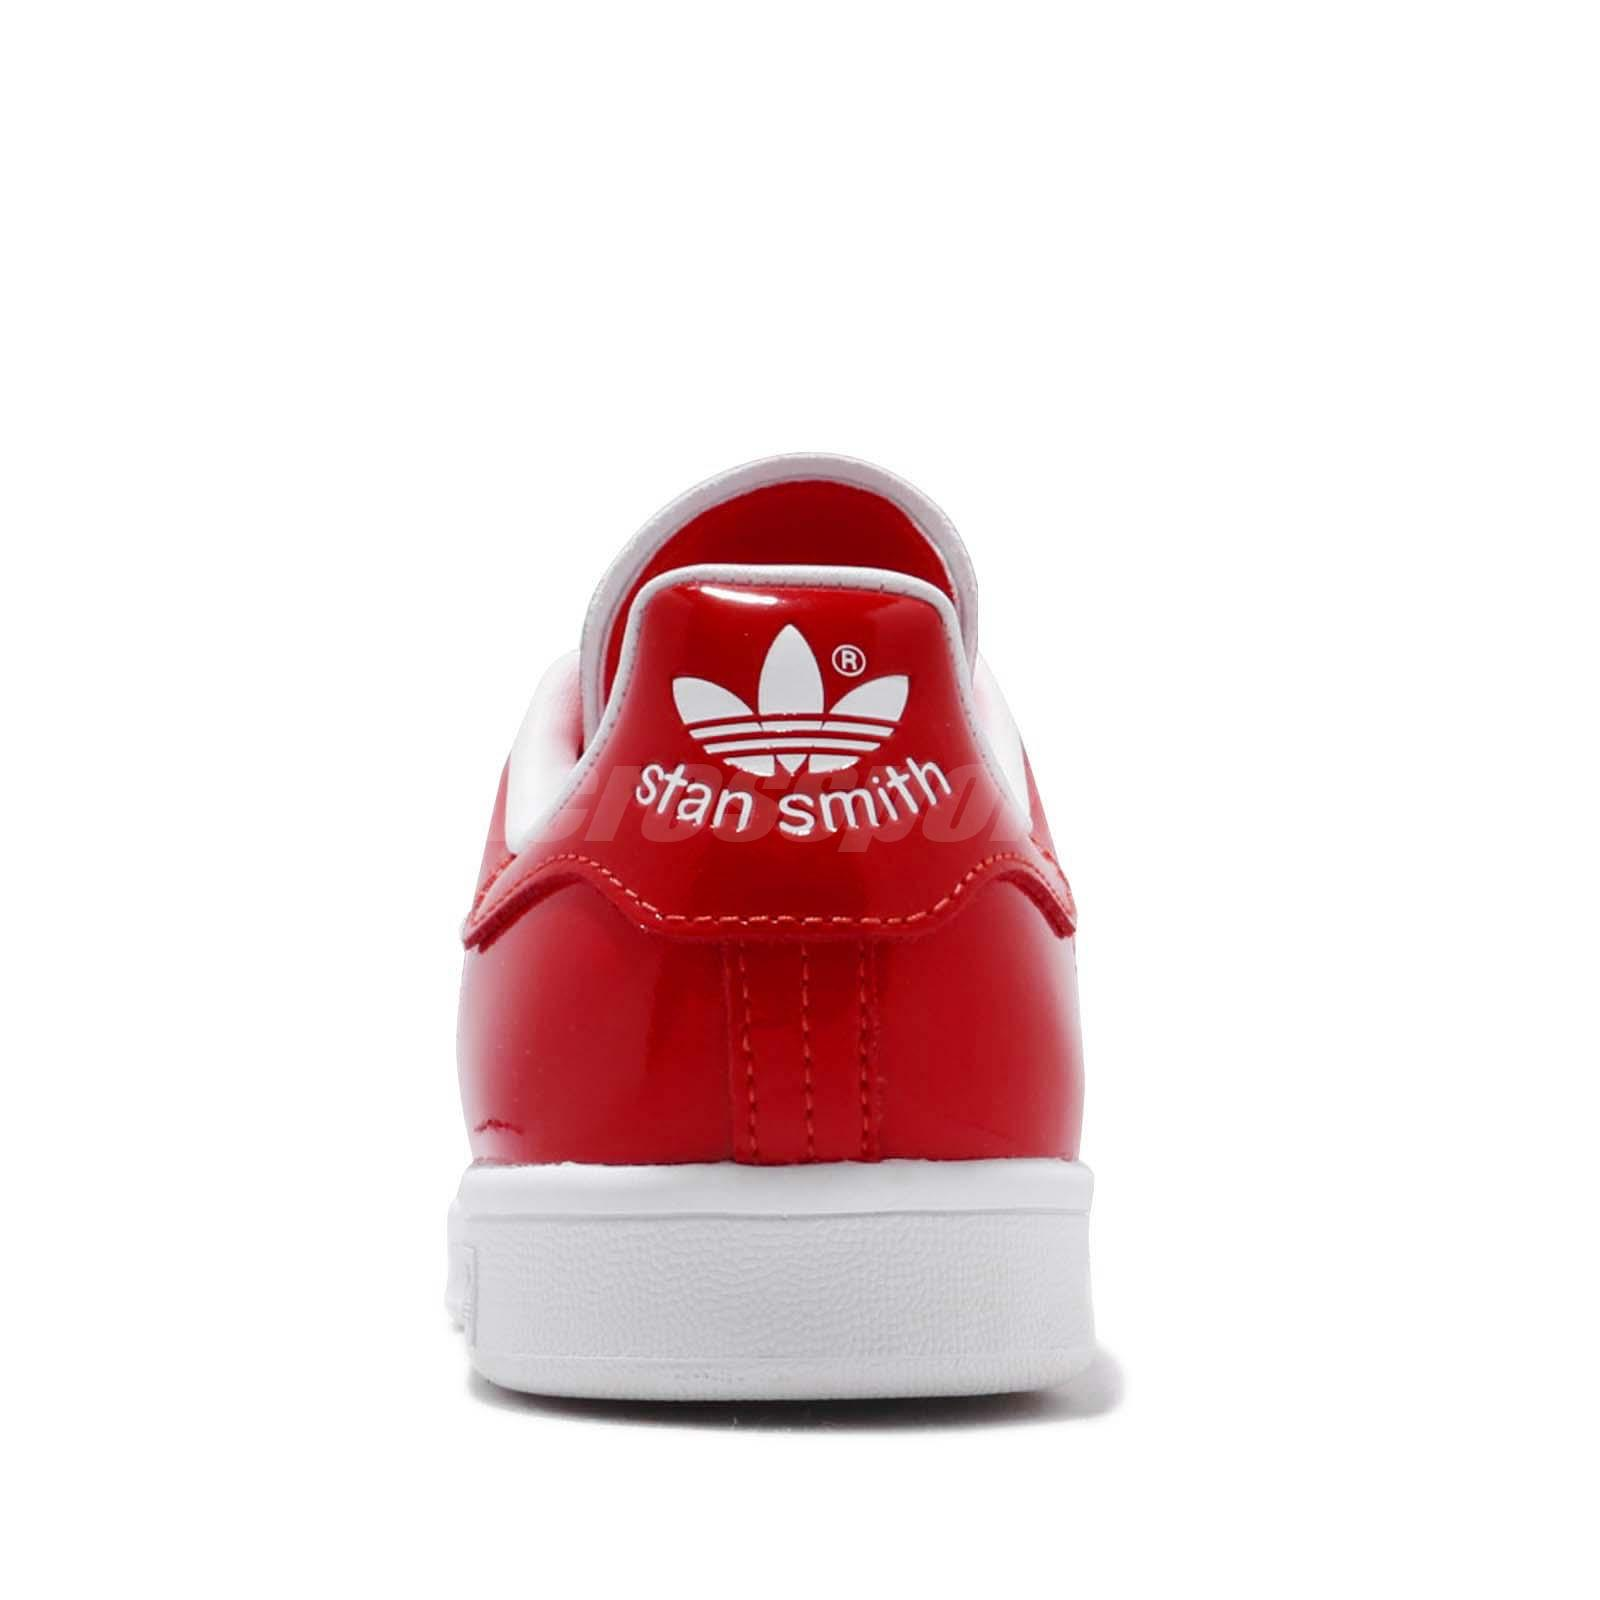 Details about adidas Originals Stan Smith W VDAY Valentines Day Red White Women Shoes G28136